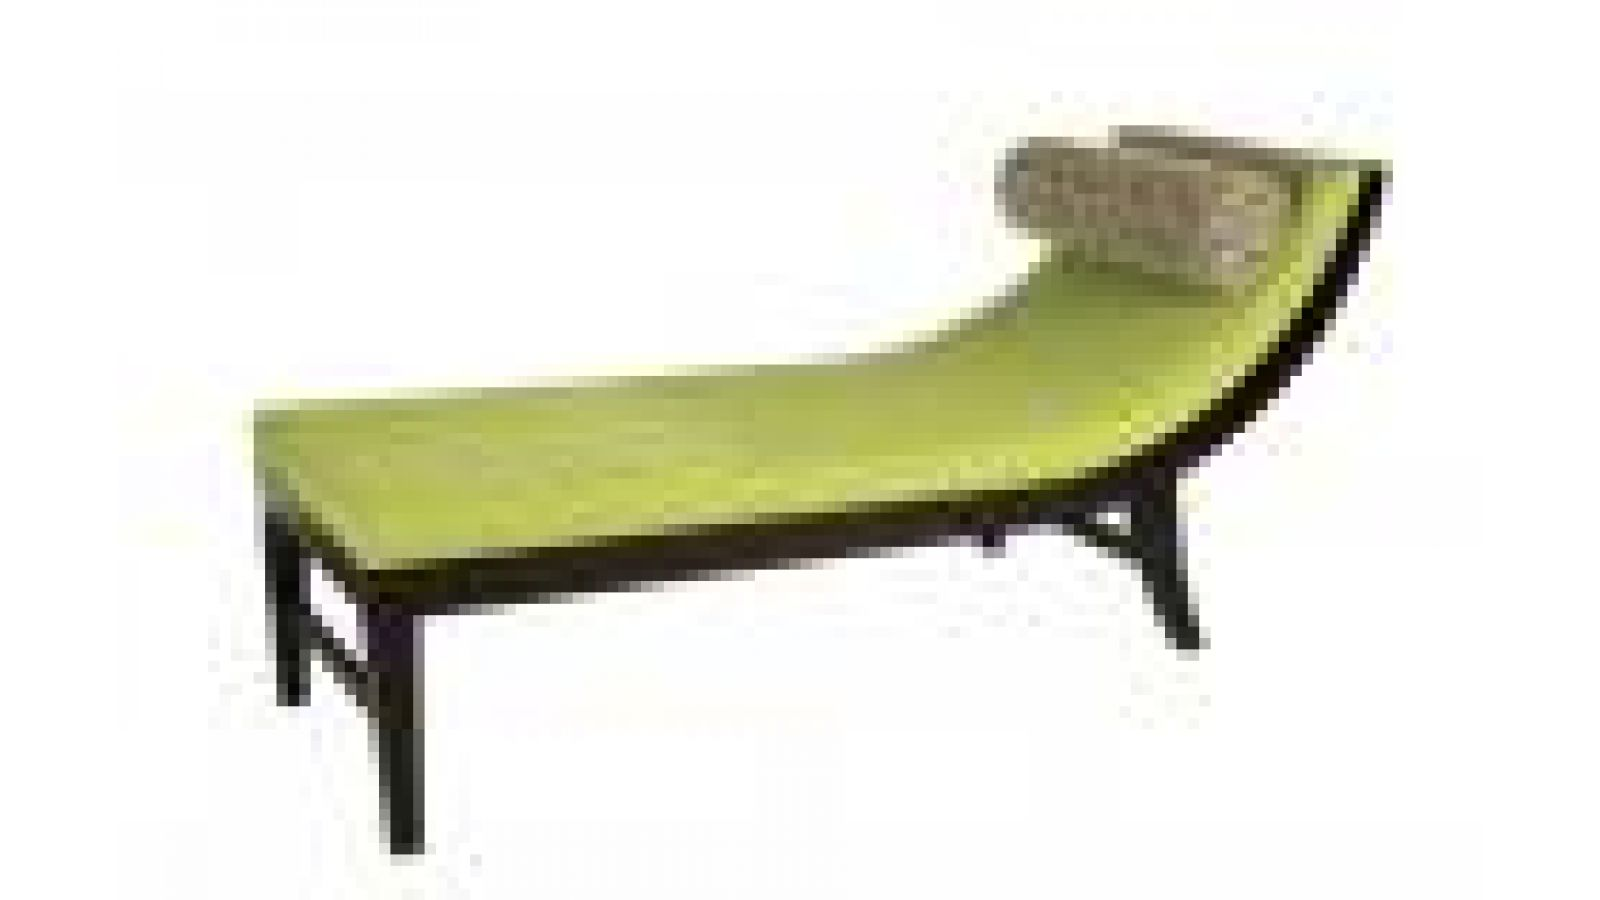 Tonya Chaise by ForrestPerkins for lone meadow